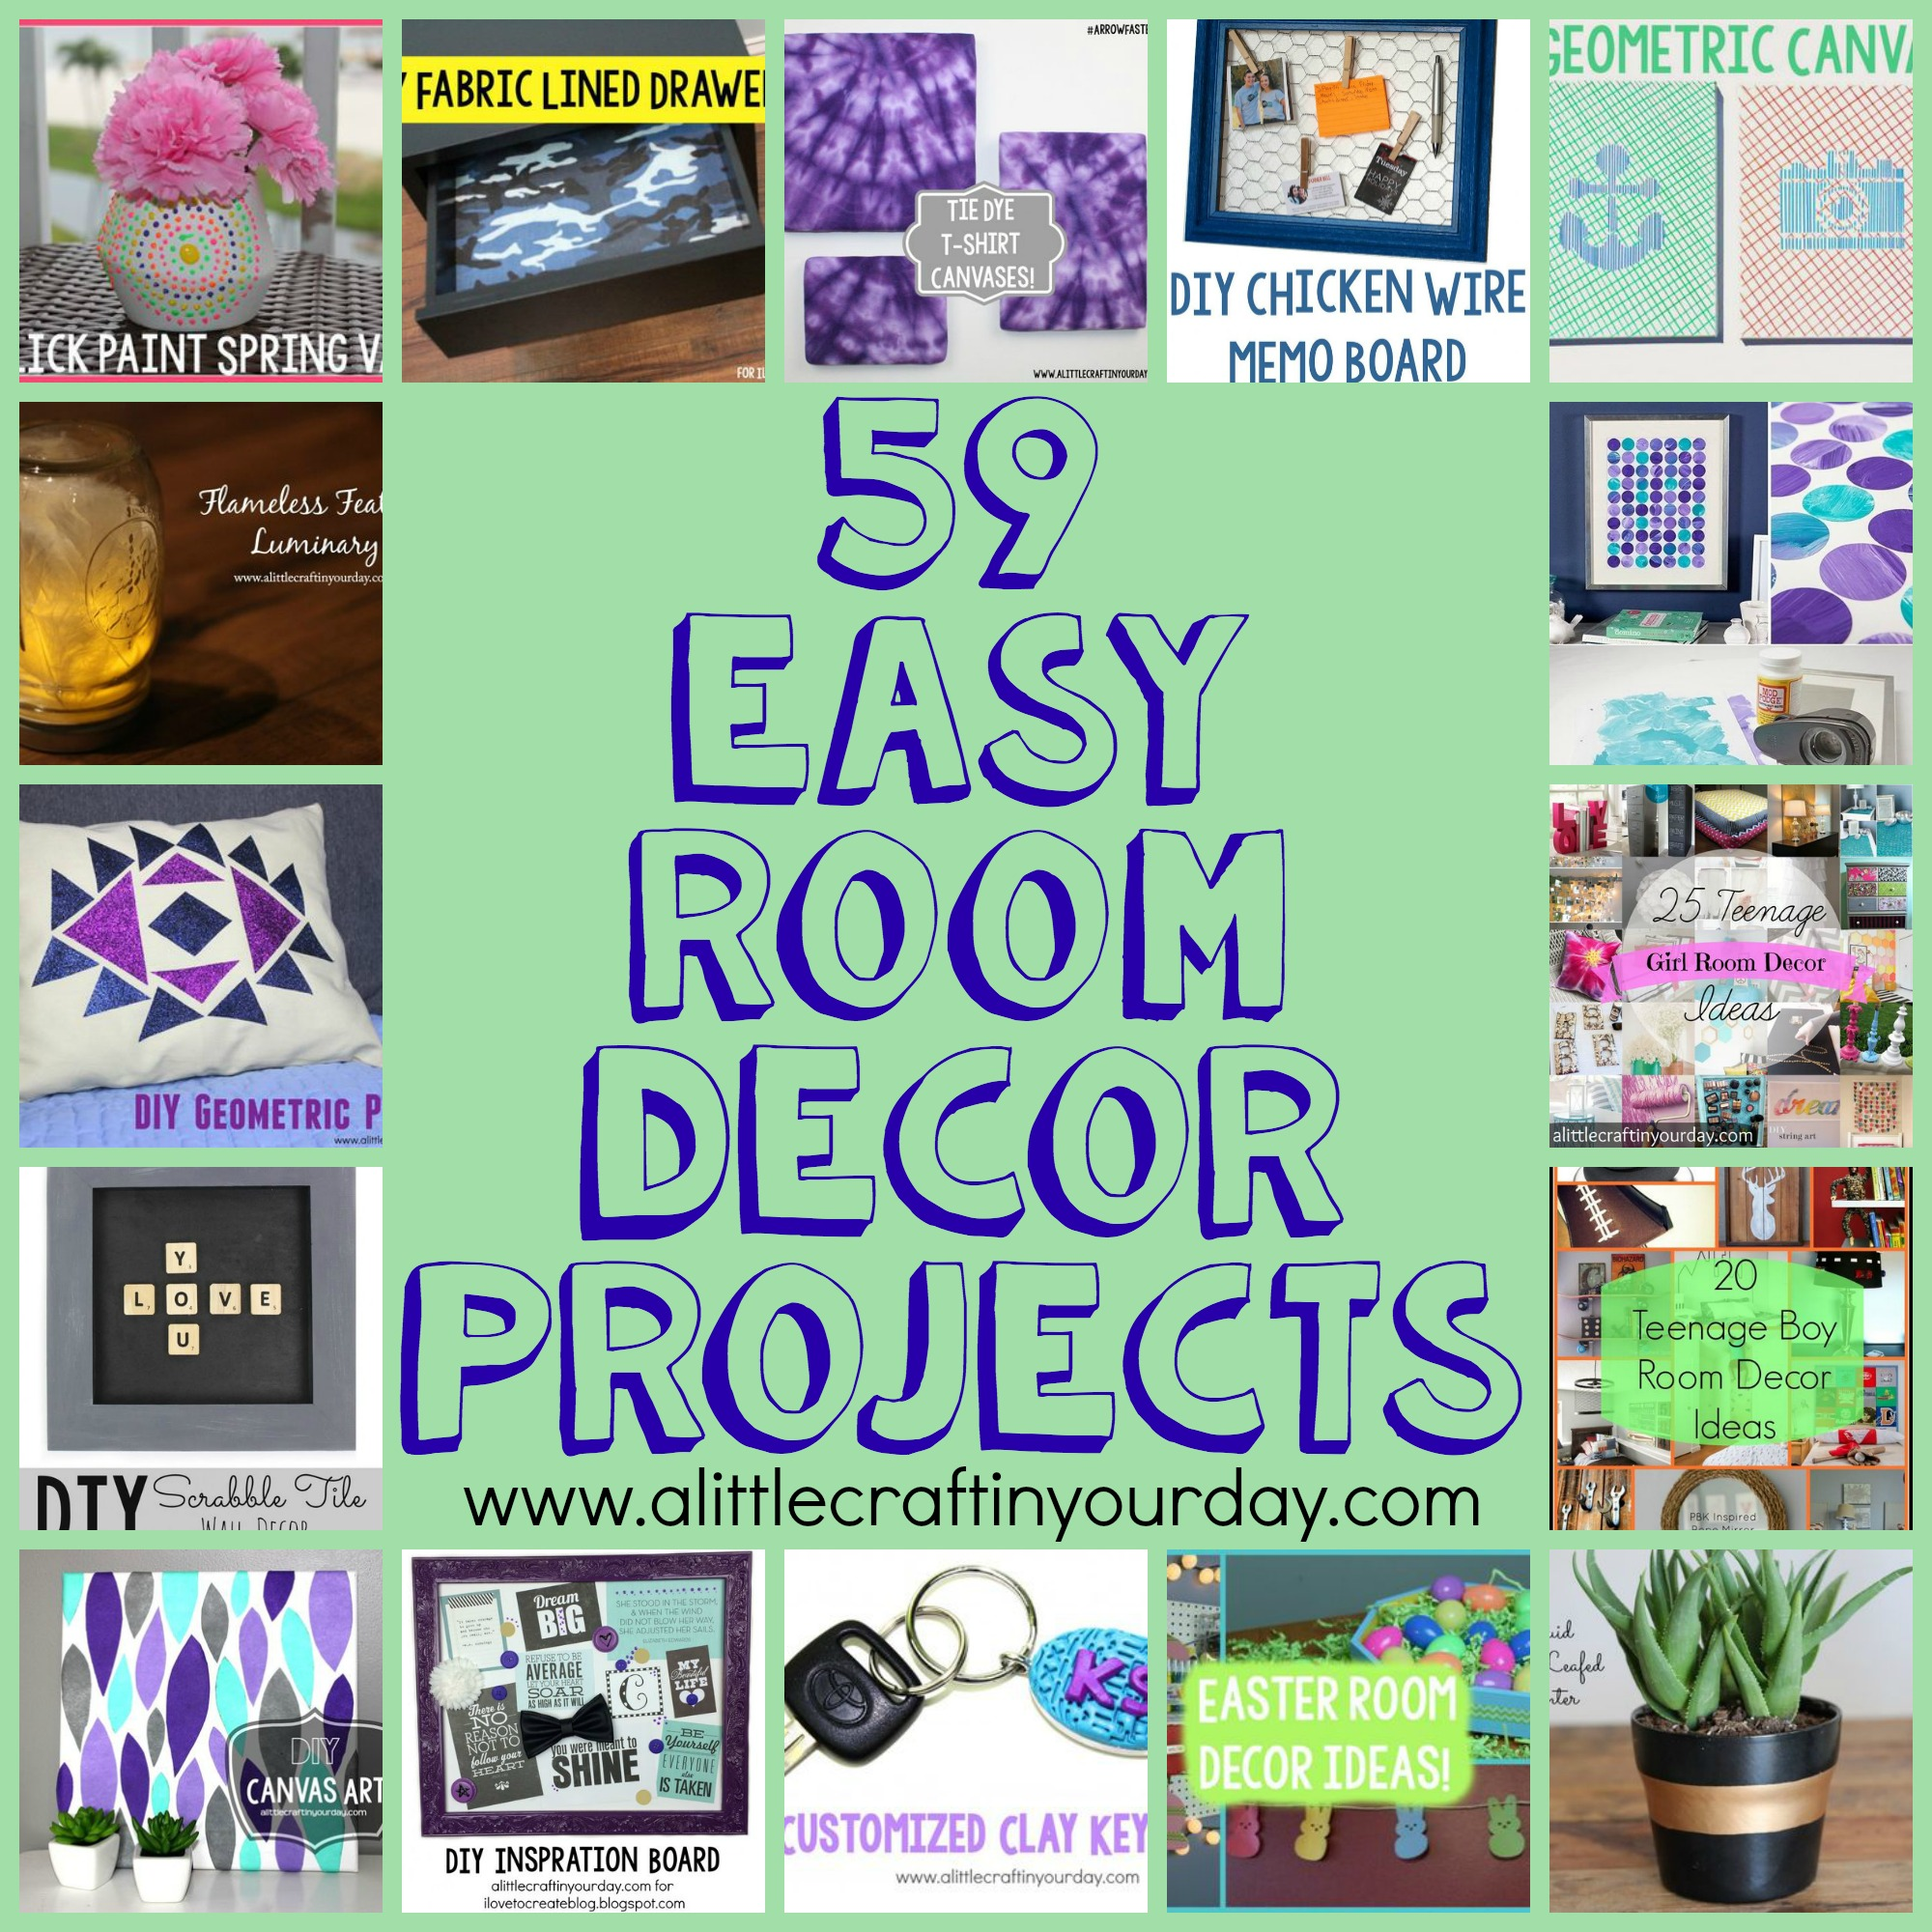 3 31   59 Easy DIY Room Decor Projects. 59 Easy DIY Room Decor Projects   A Little Craft In Your Day